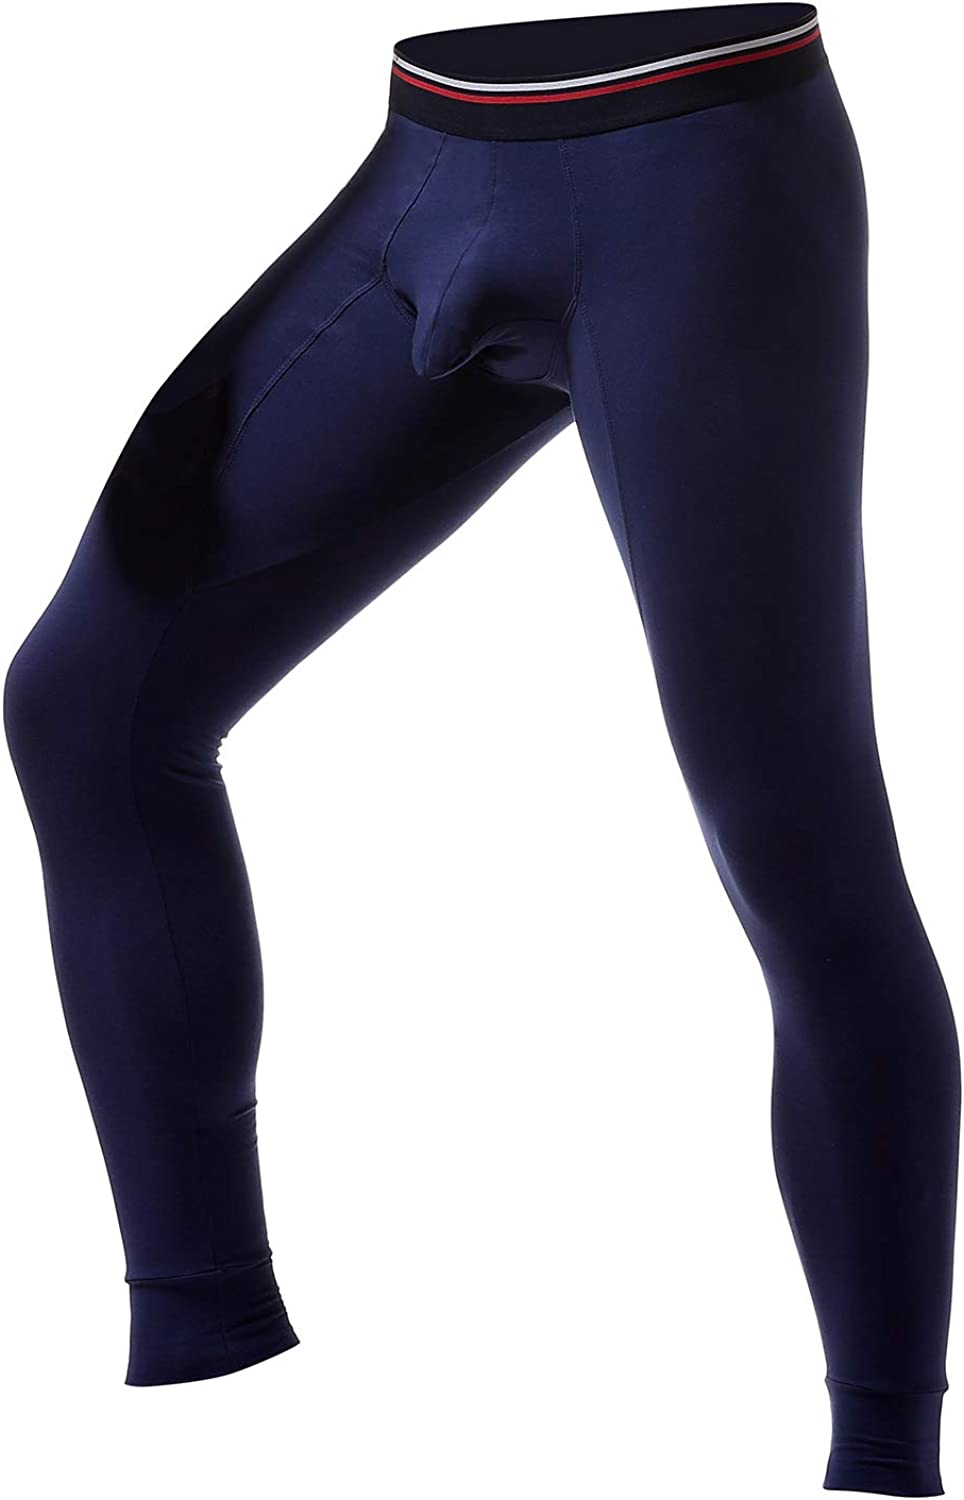 Ouruikia Mens Thermal Underwear Pants Thermal Bottoms Long Johns Bottoms with Separate Pouch